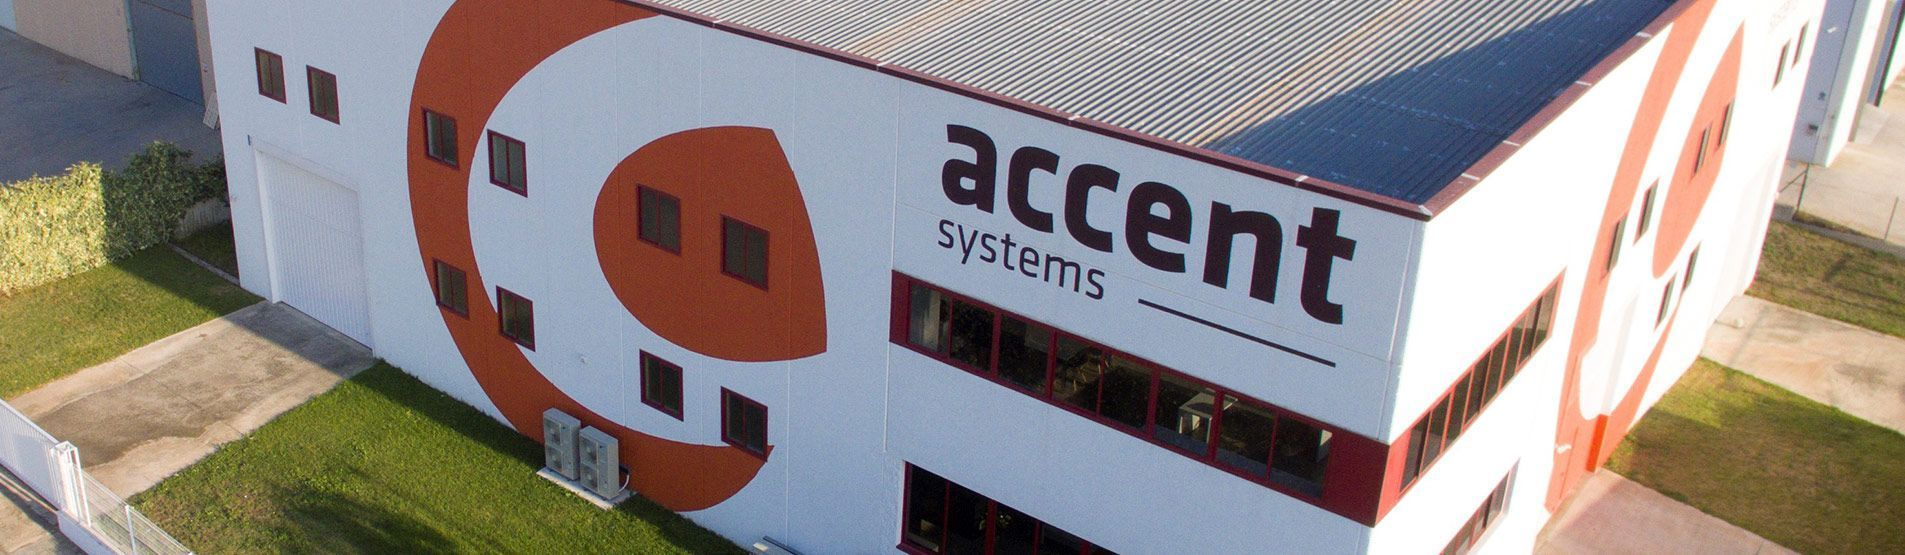 accent-systems-iot-factory